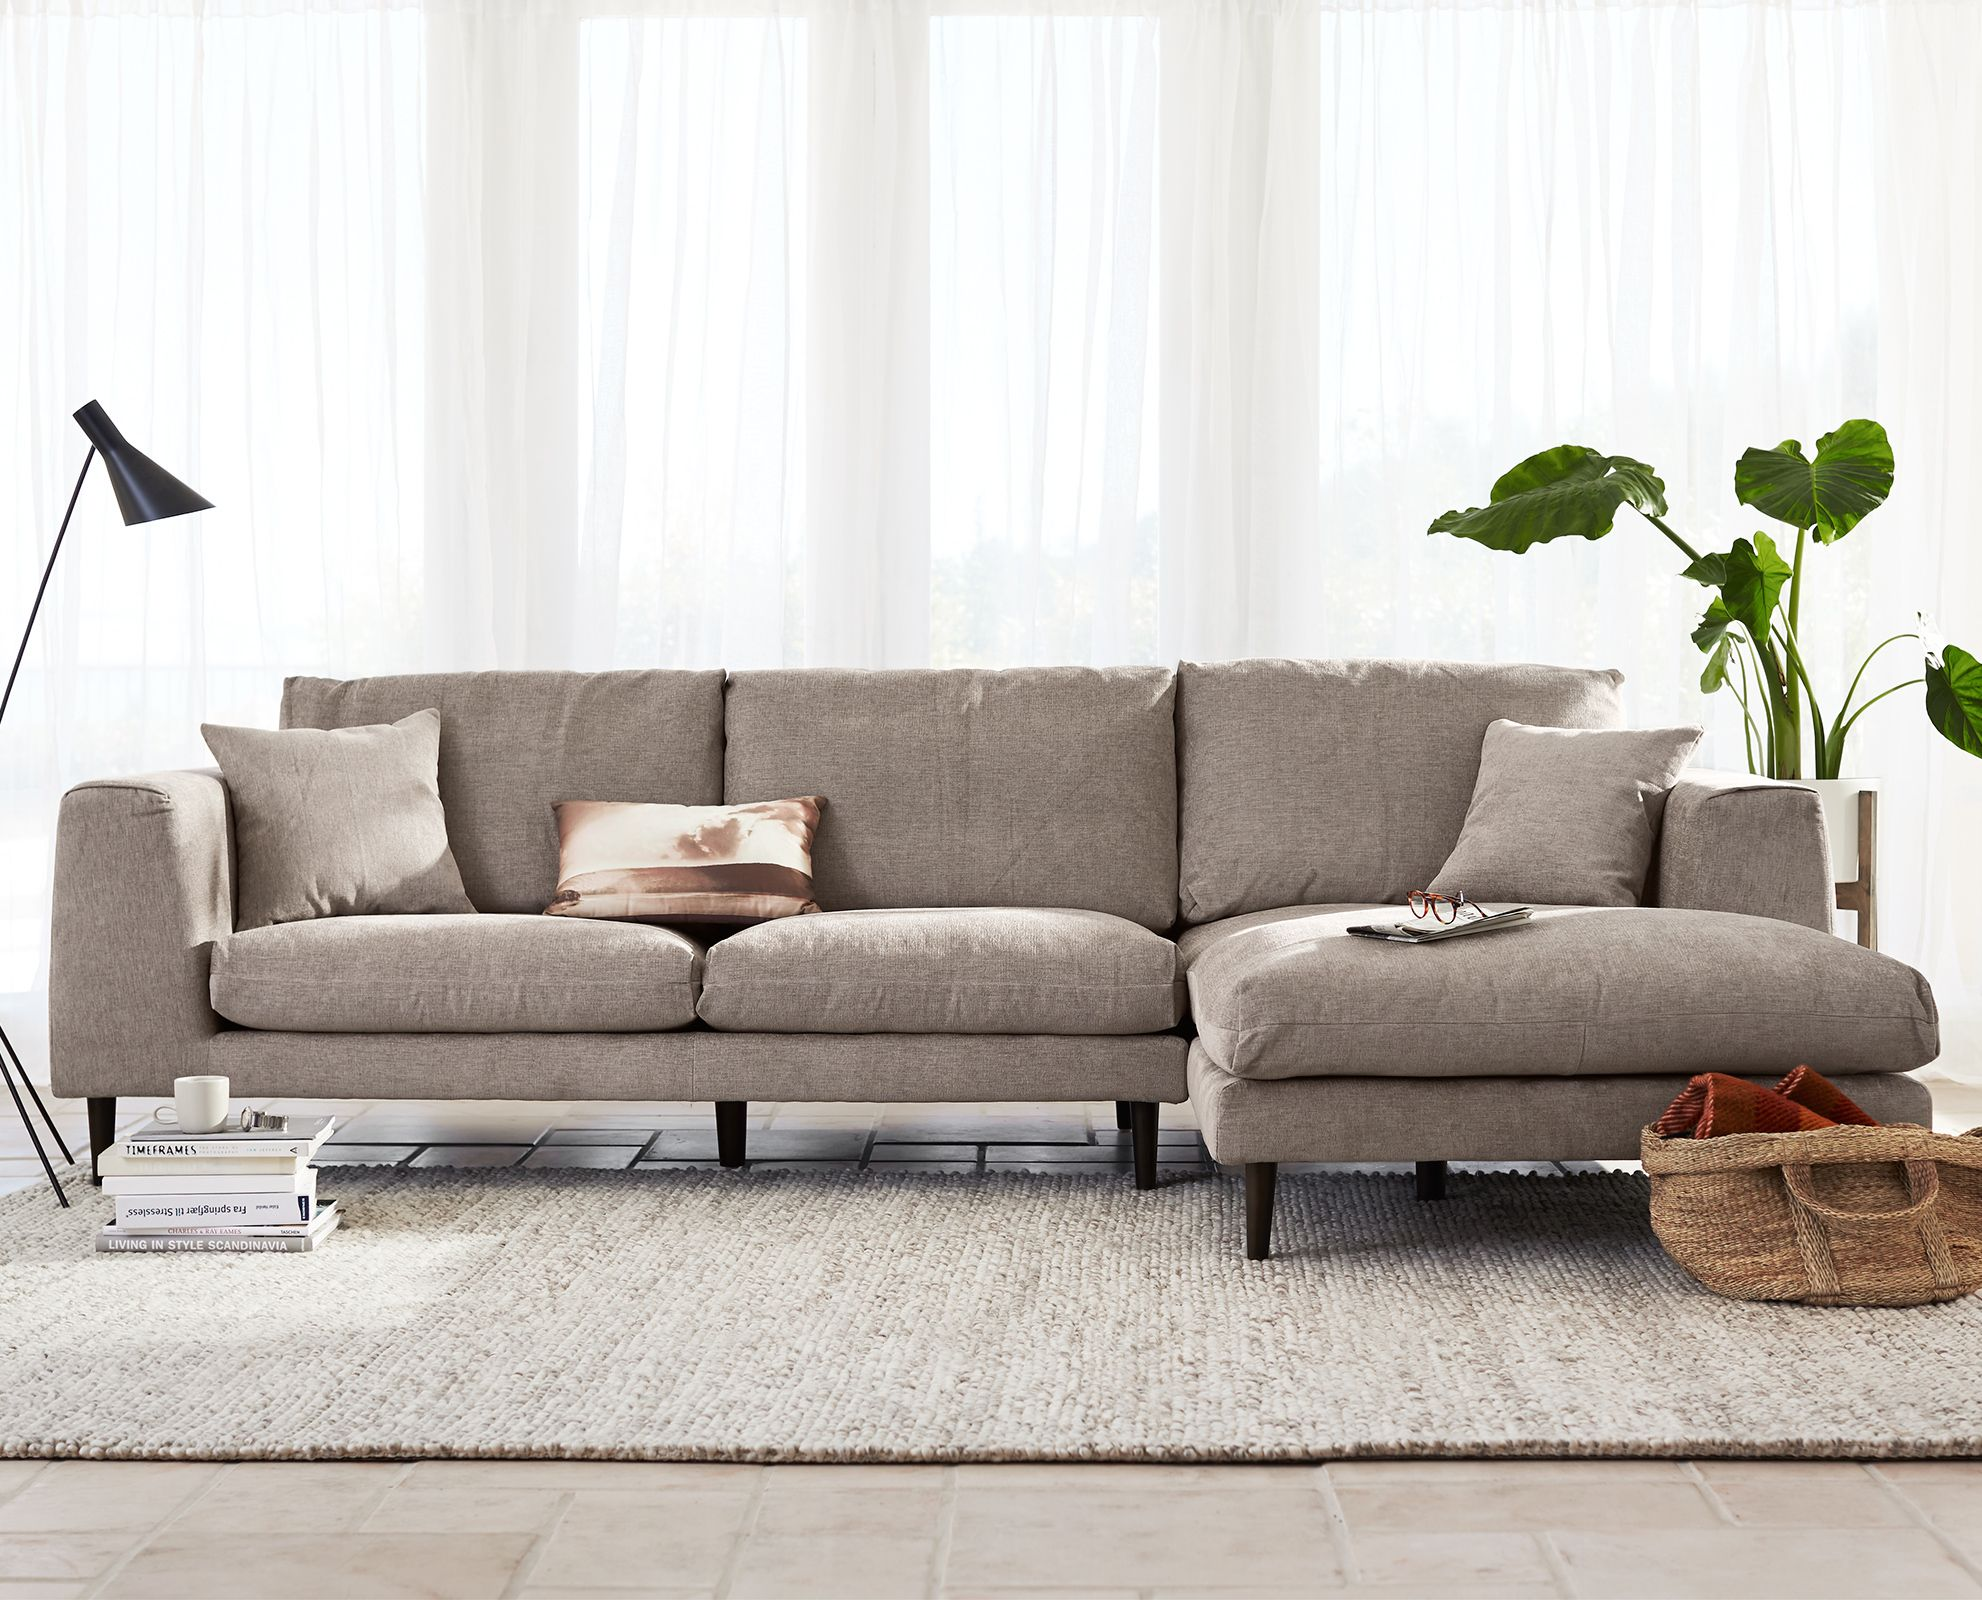 Dania Sectionals Jorgen Chaise Sectional Sectional Sofa With Chaise Scandinavian Sofa Design Leather Sofa And Loveseat